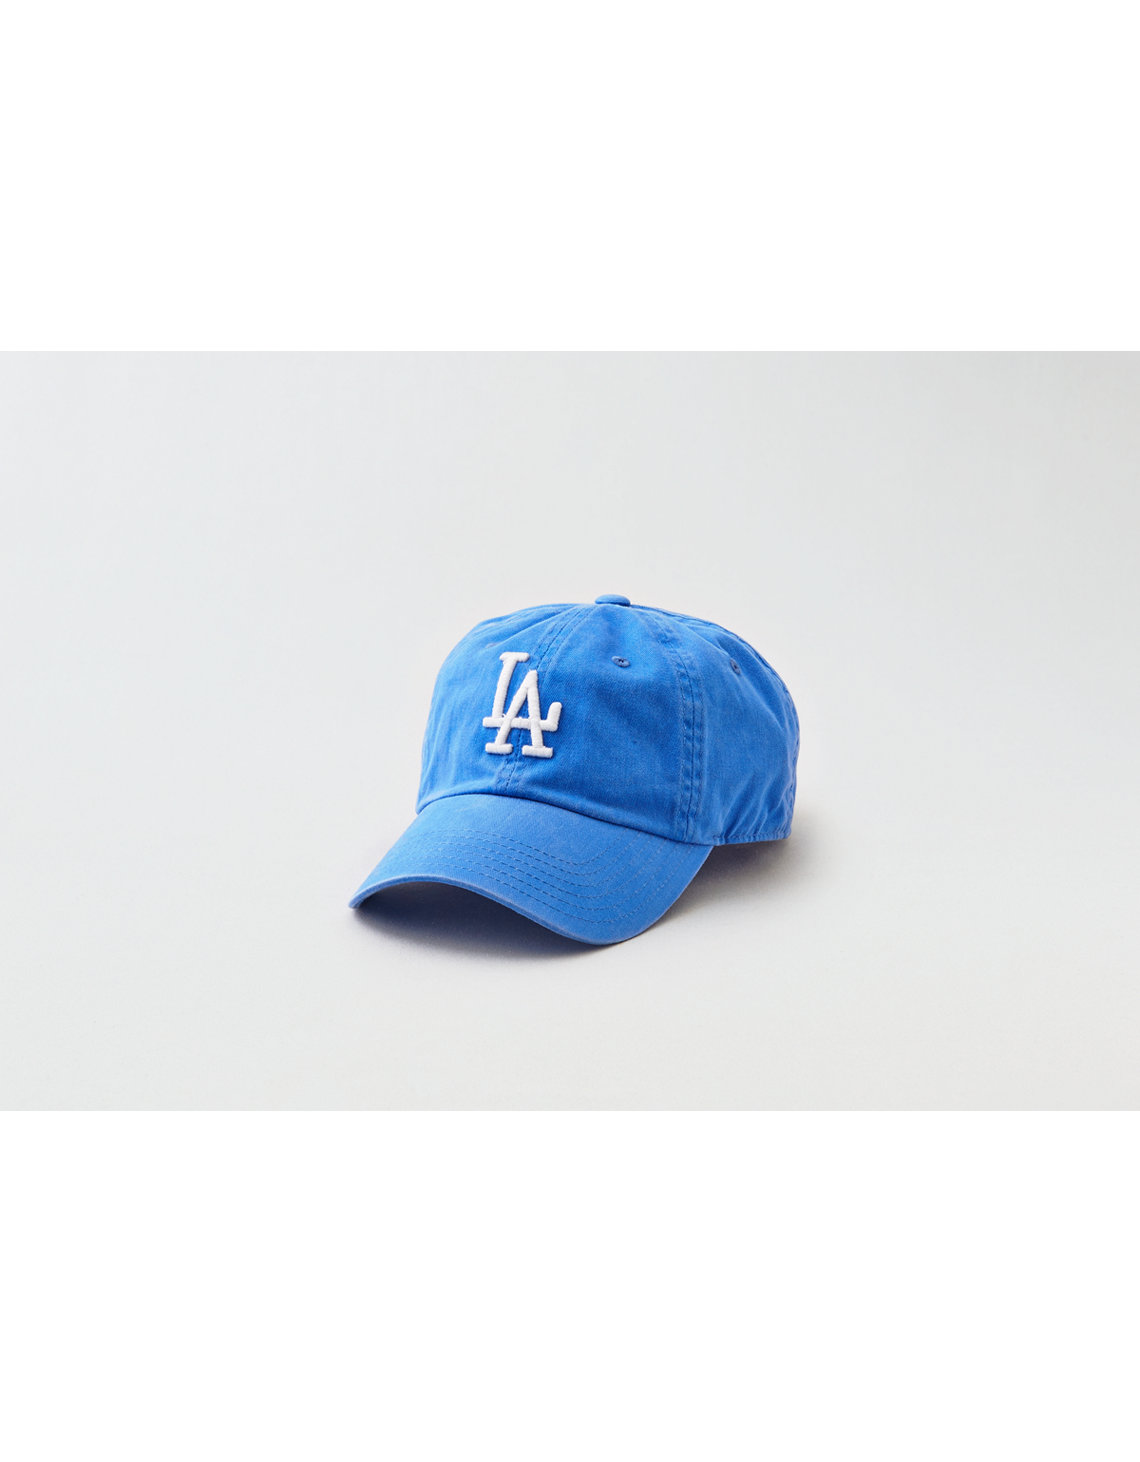 American Needle LA Dodgers Baseball Hat. Placeholder image. Product Image 6fabb48b9e0